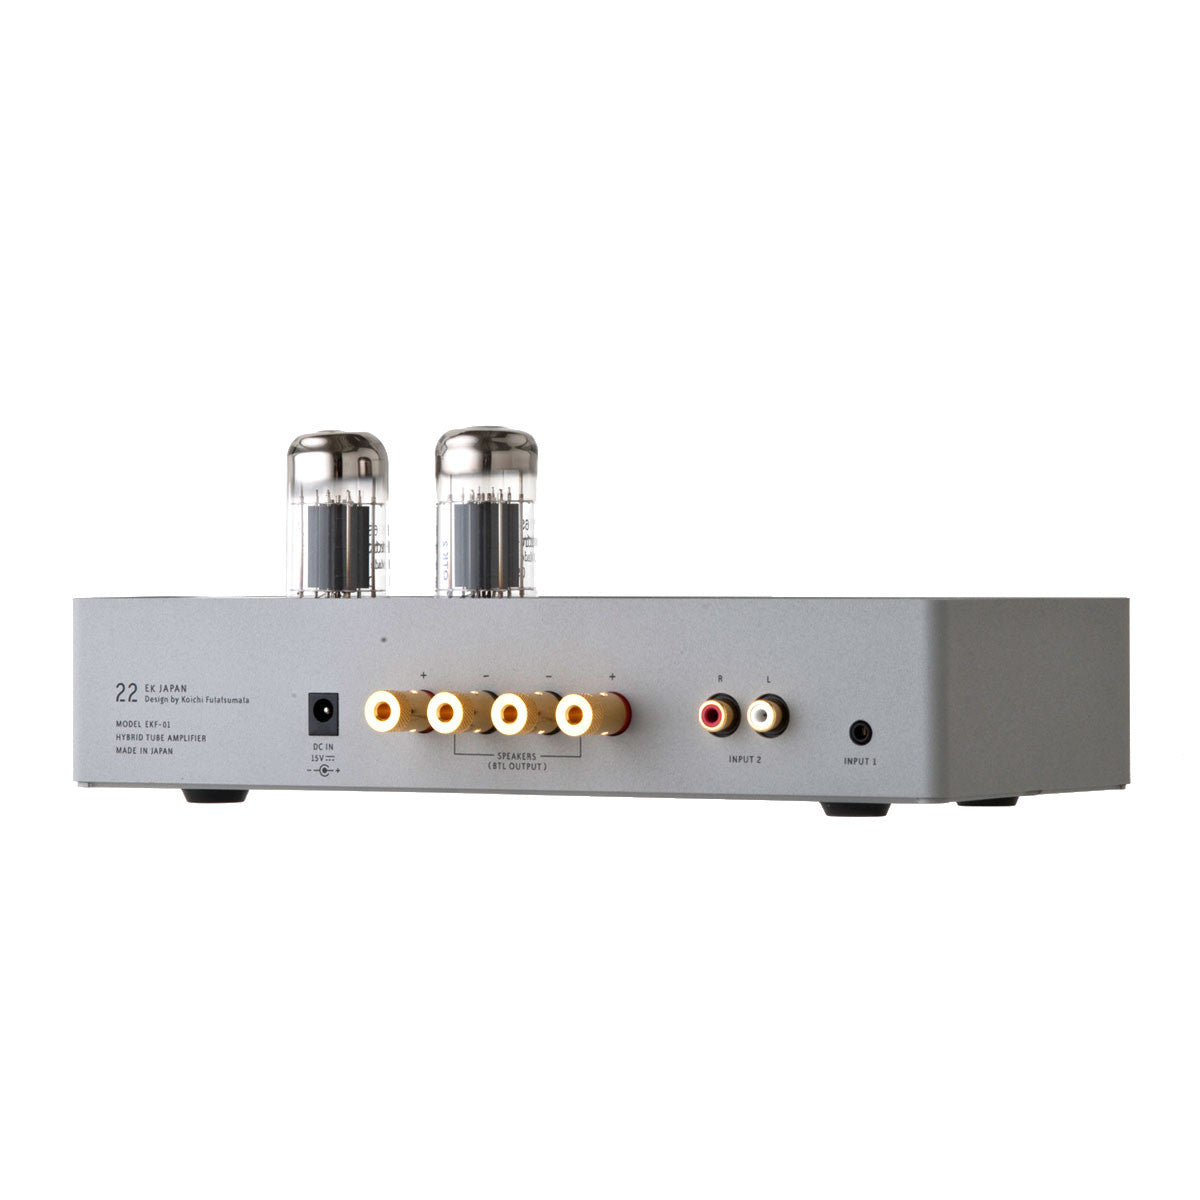 EK Japan: 22 Hybrid Tube Amplifier back